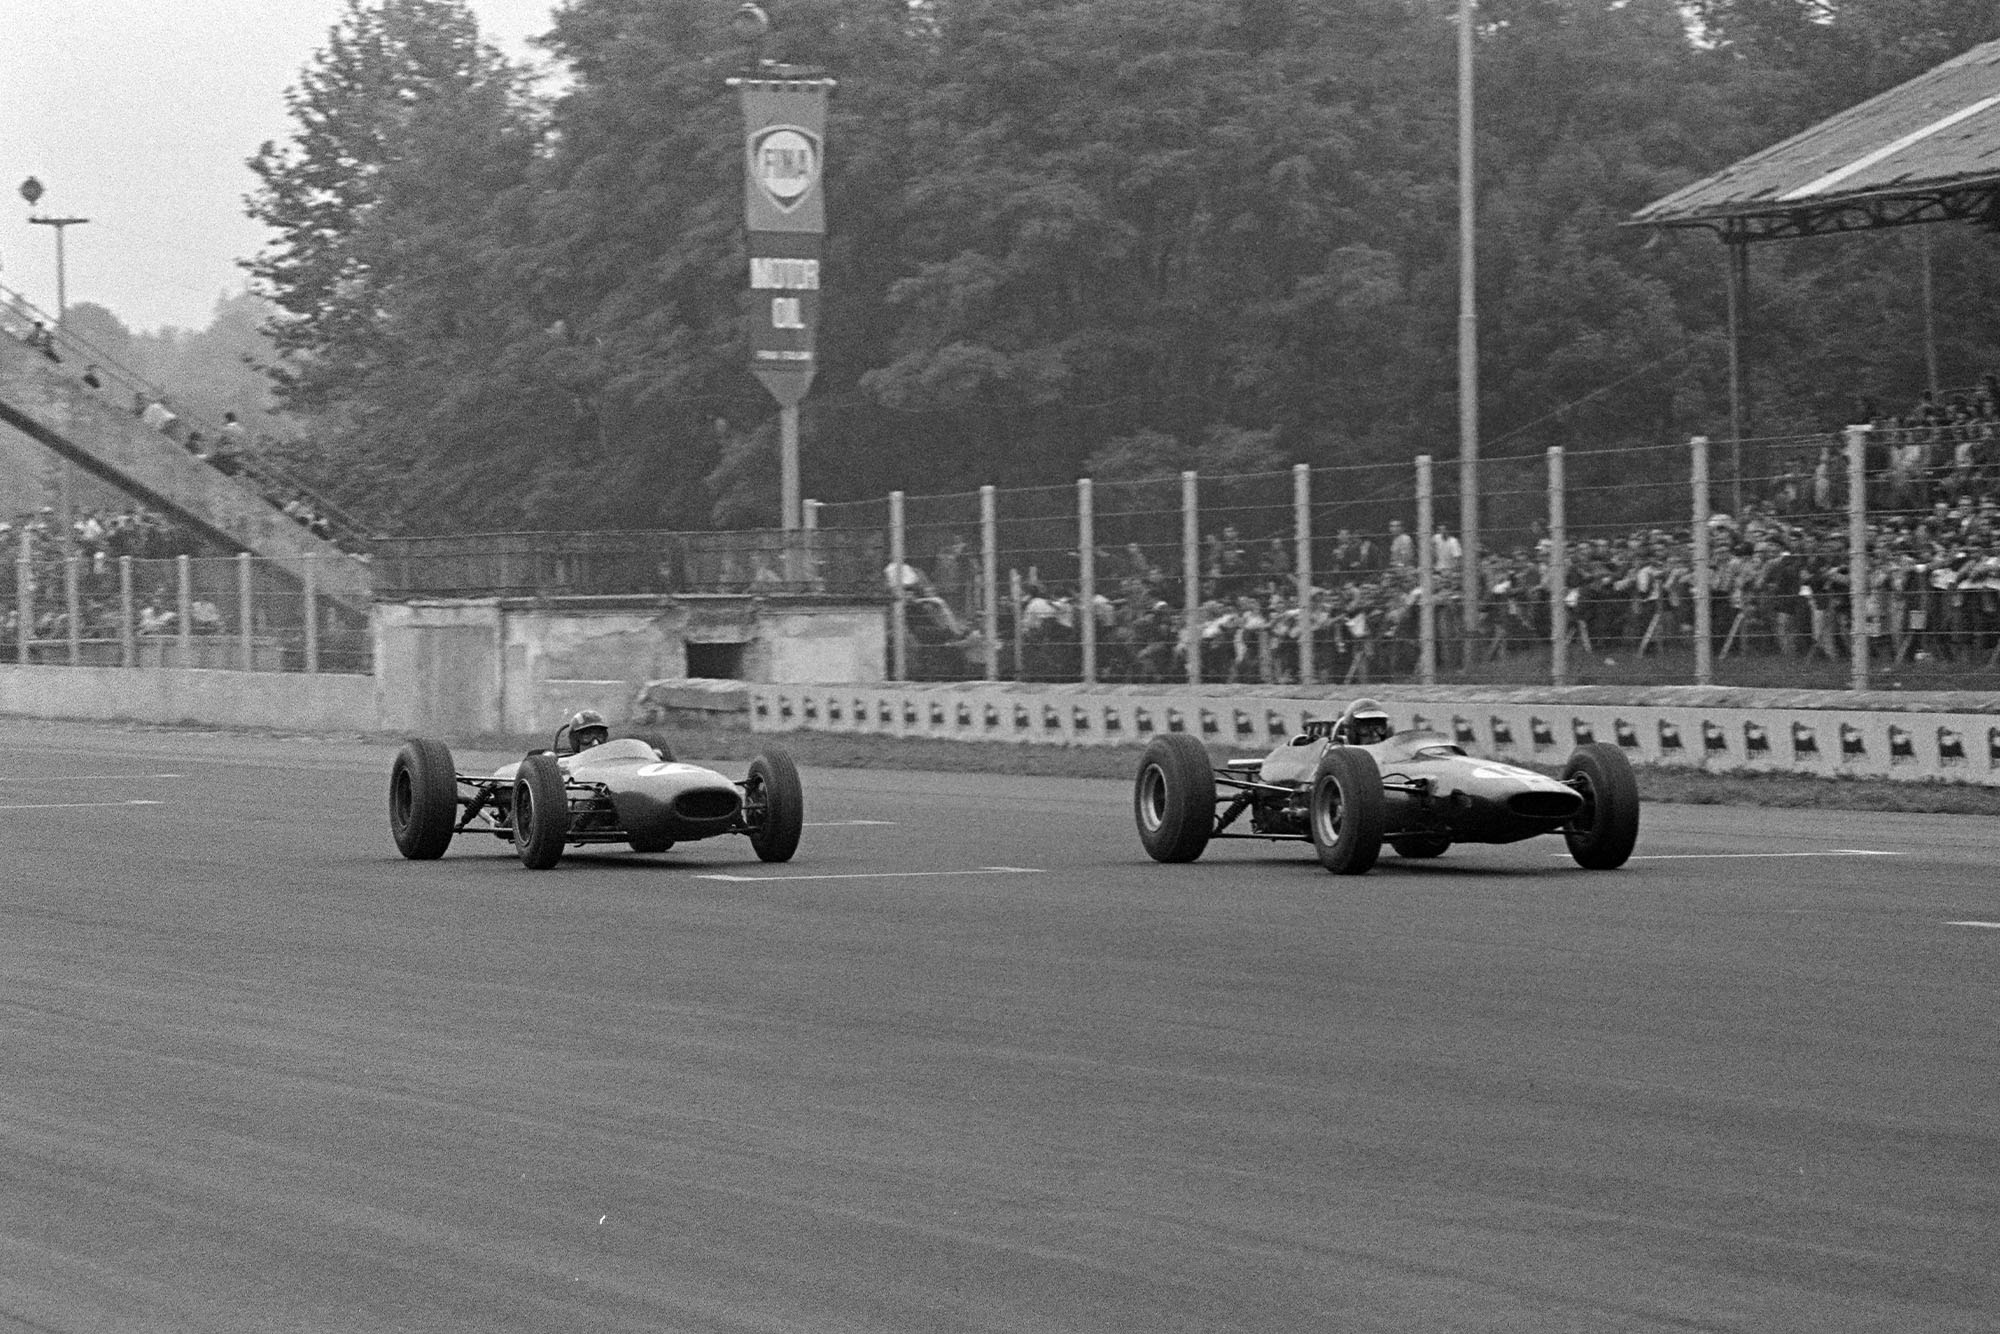 Mike Spence, Lotus 33 Climax, battles with Jo Siffert, Brabham BT11 BRM.